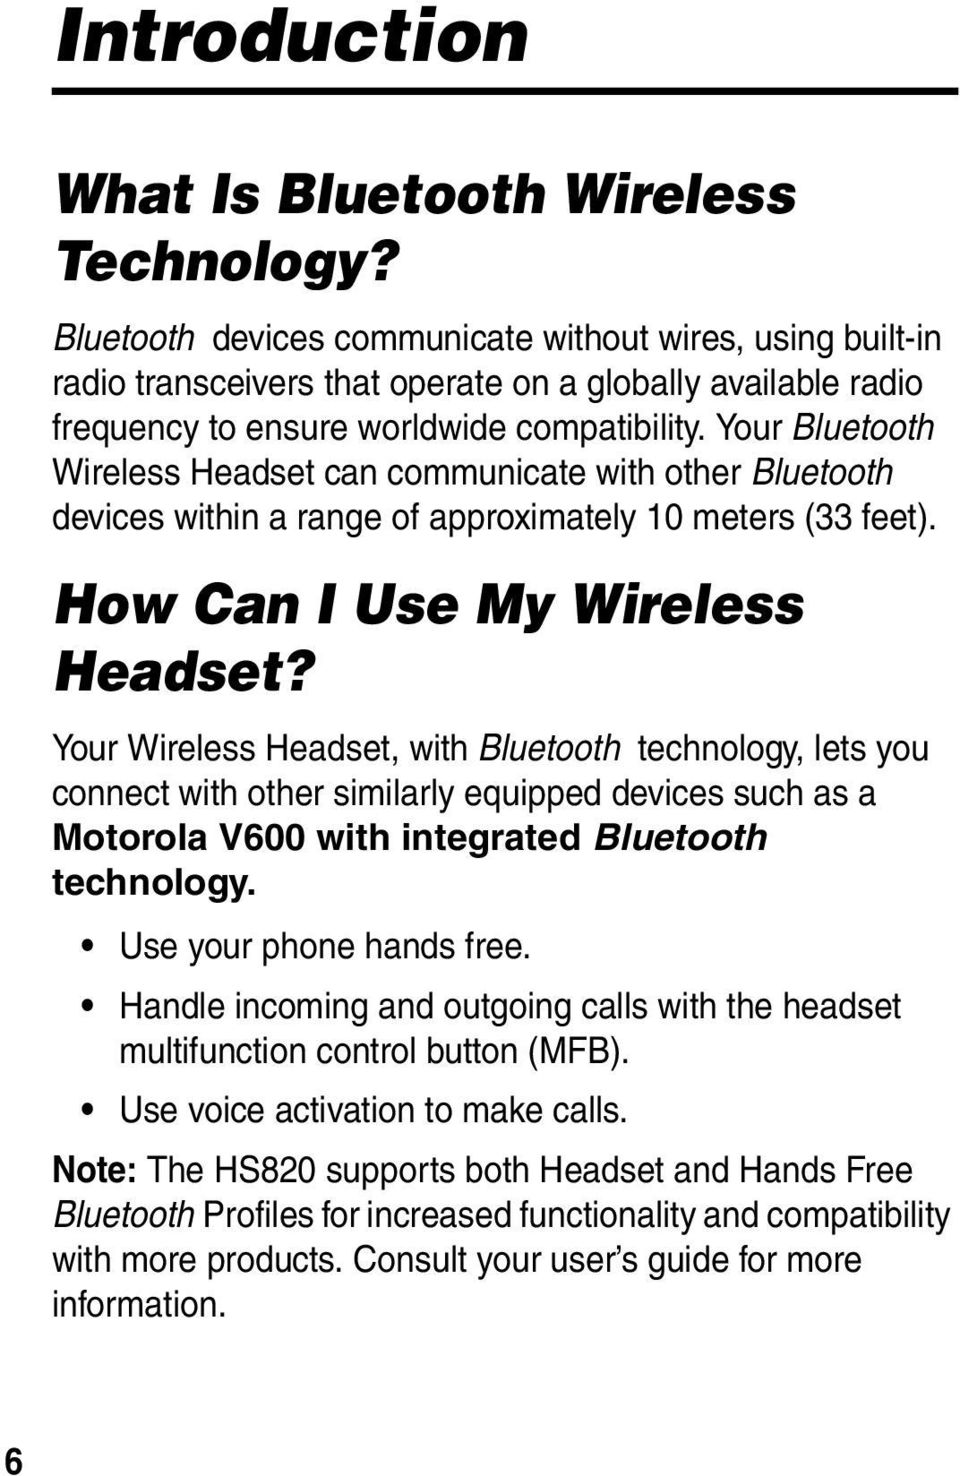 Your Bluetooth Wireless Headset can communicate with other Bluetooth devices within a range of approximately 10 meters (33 feet). How Can I Use My Wireless Headset?